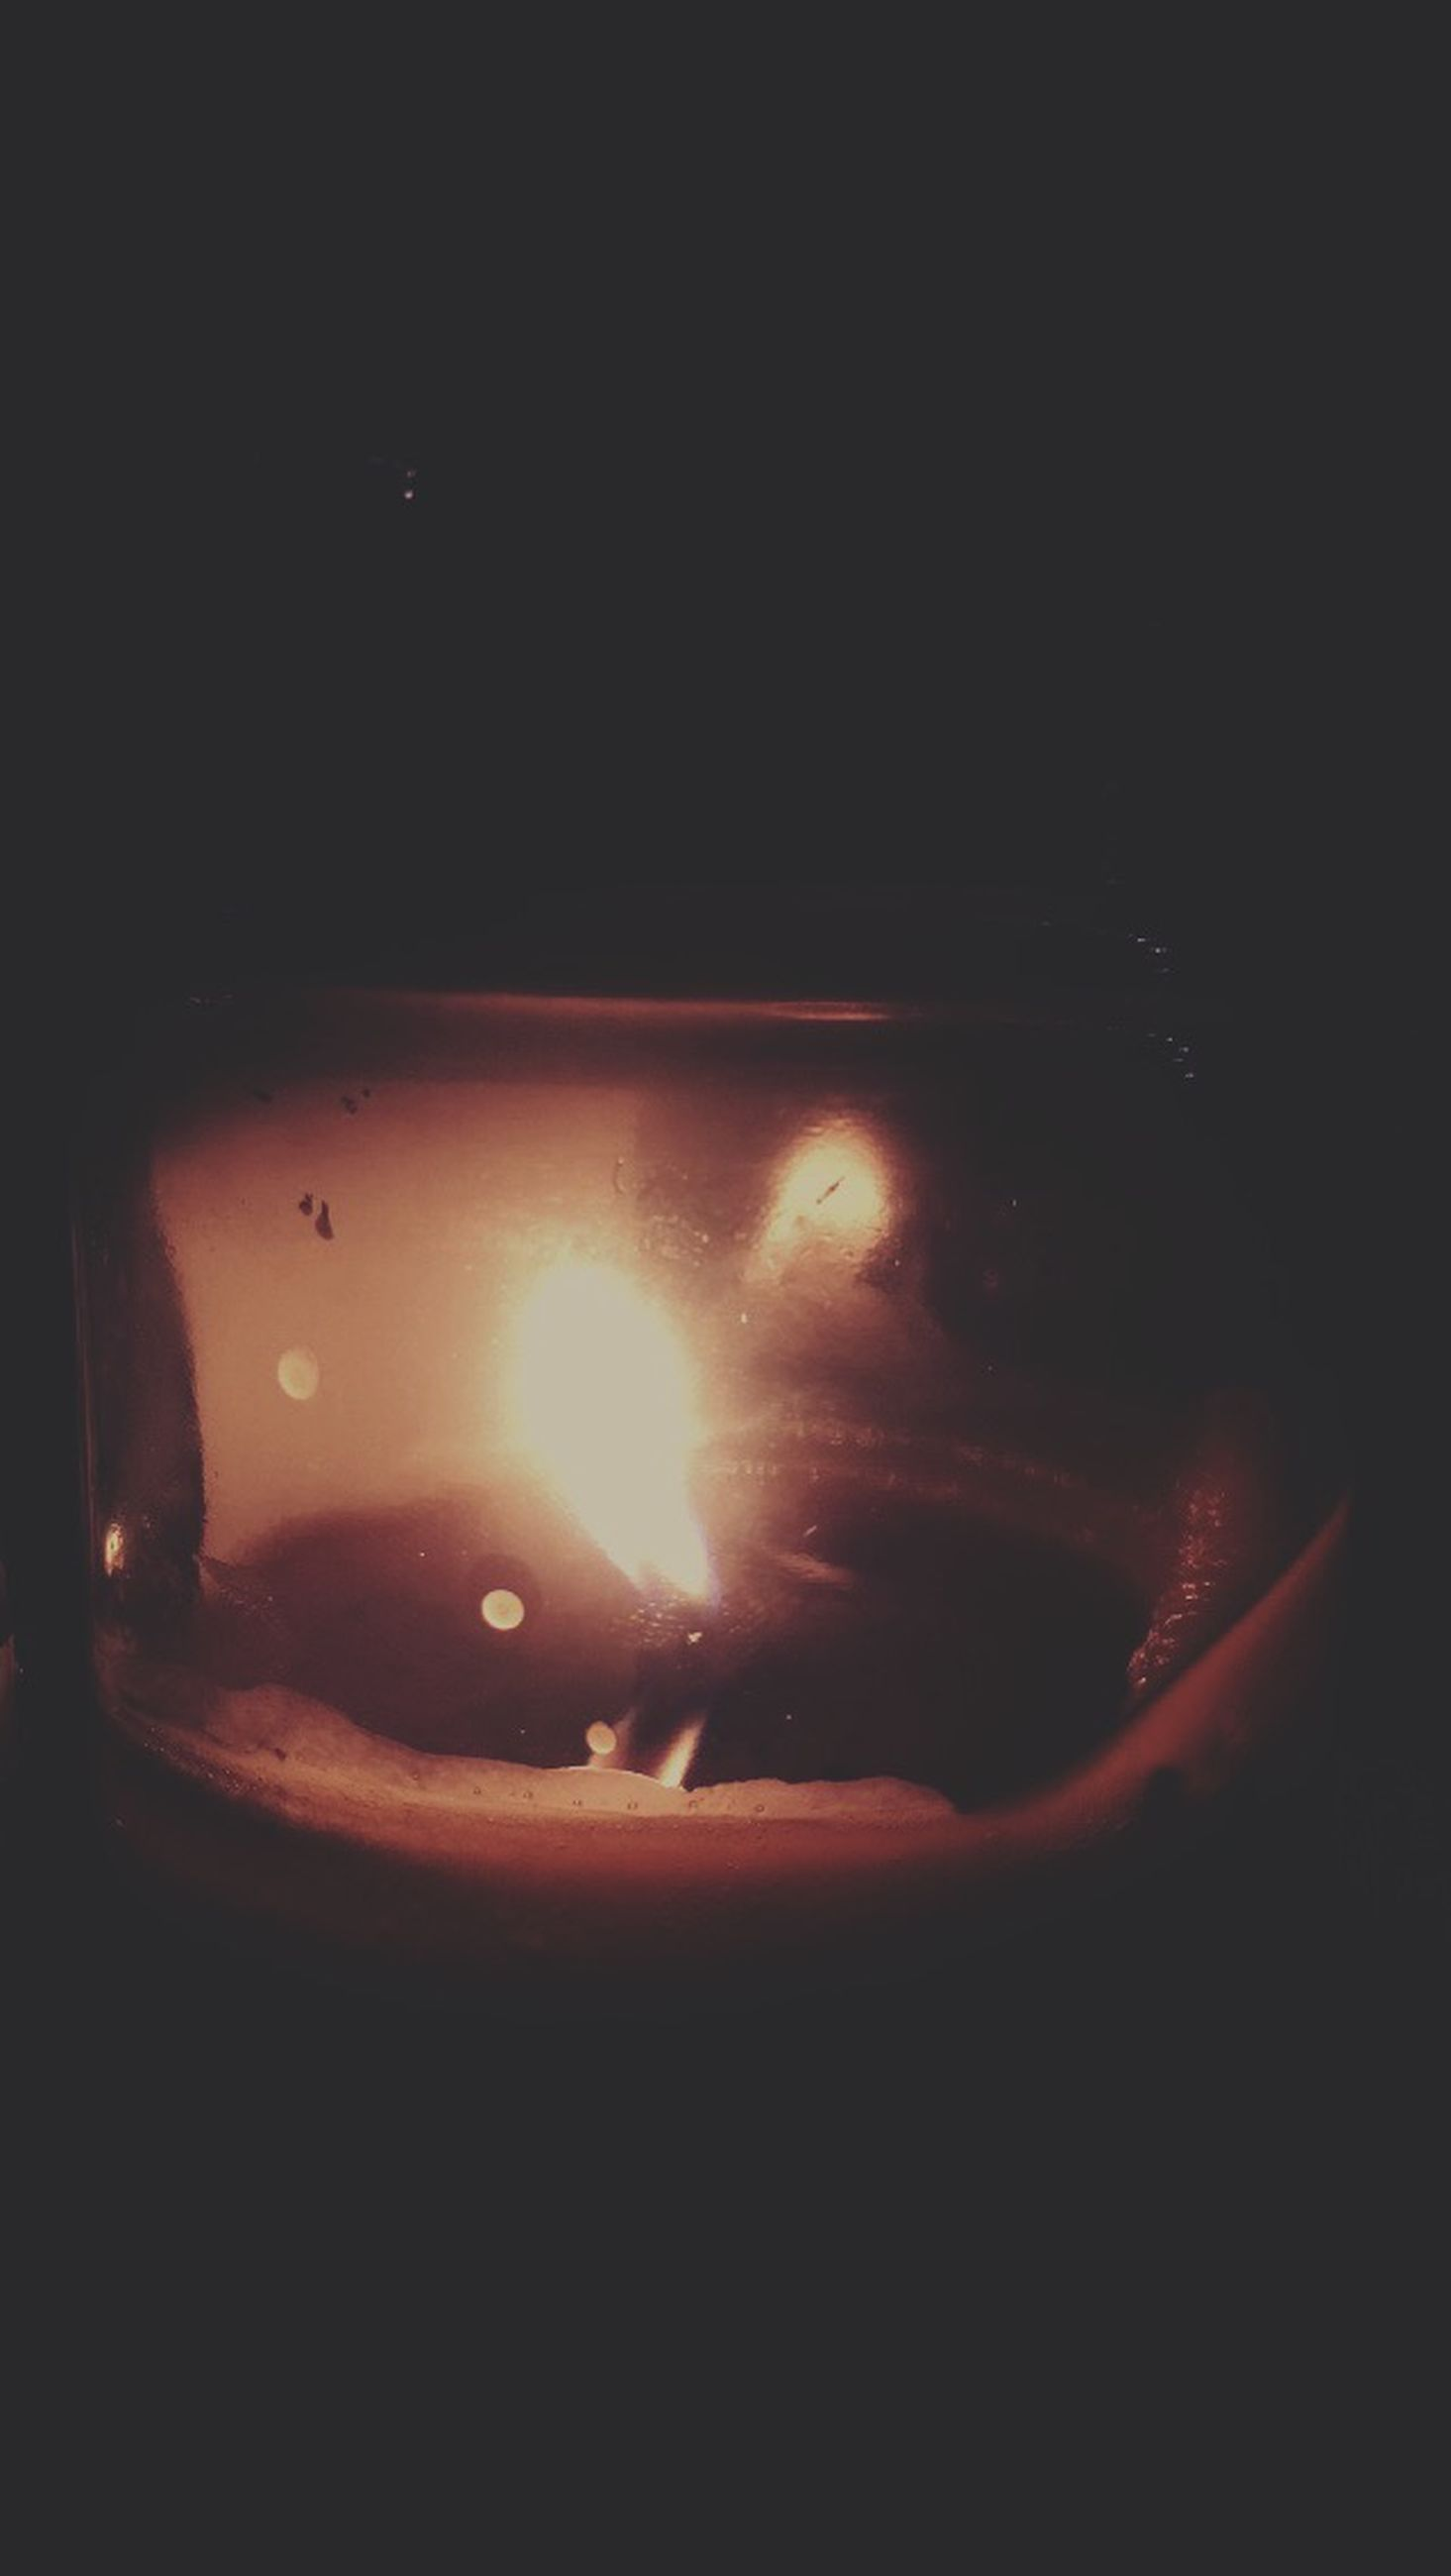 burning, indoors, flame, heat - temperature, fire - natural phenomenon, illuminated, glowing, dark, close-up, candle, lit, copy space, night, fire, black background, still life, light - natural phenomenon, darkroom, candlelight, lighting equipment